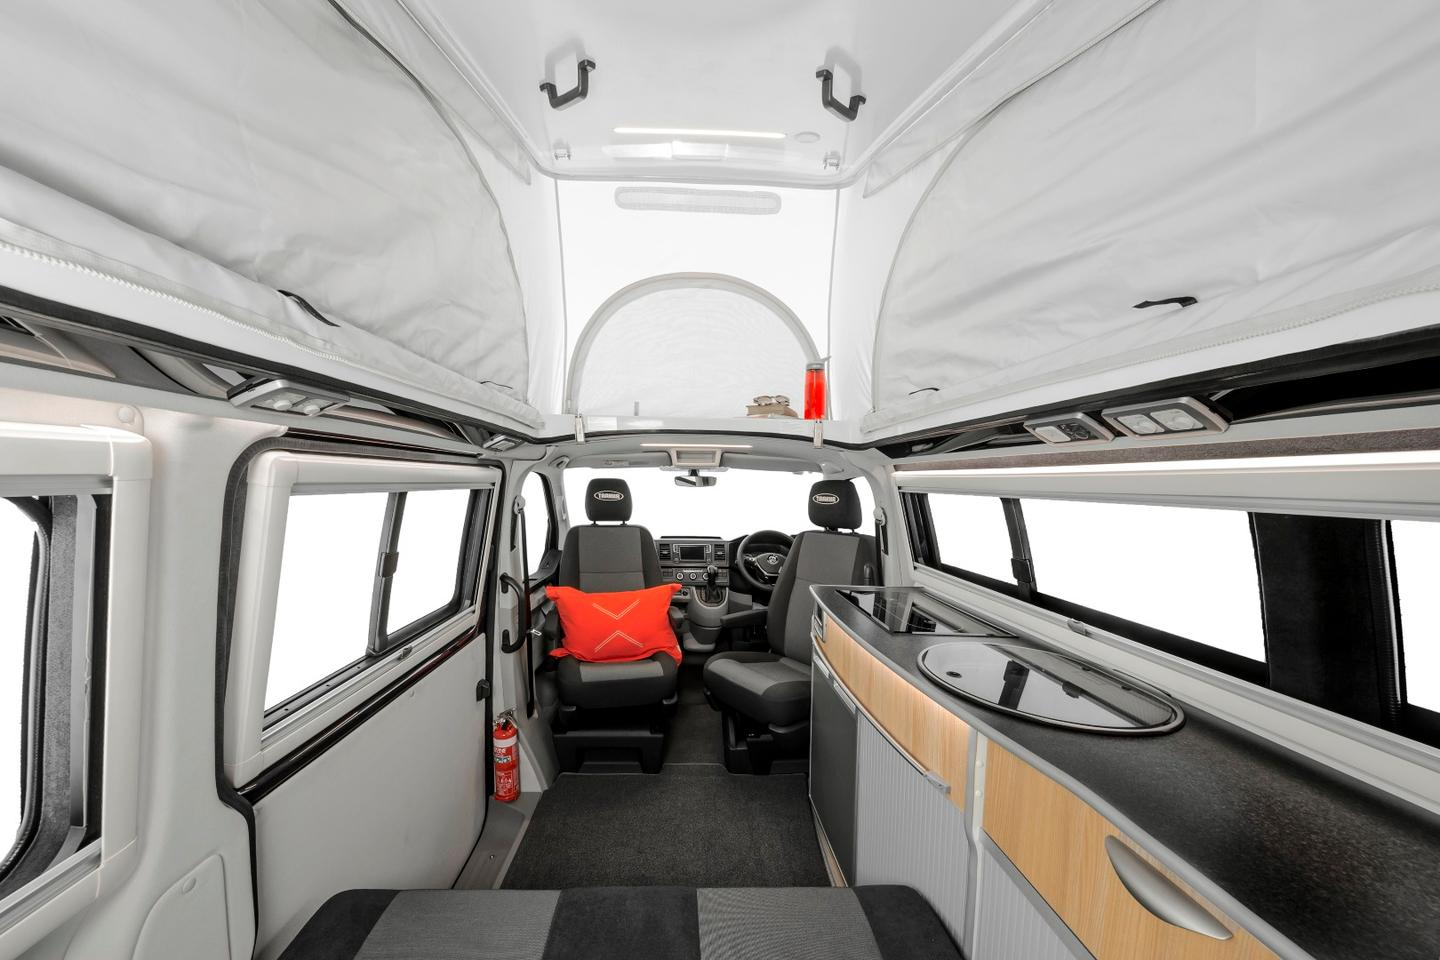 The Trakkadu AT interior includes a sliding rear bench/folding bed, swivel front seats and a kitchen area